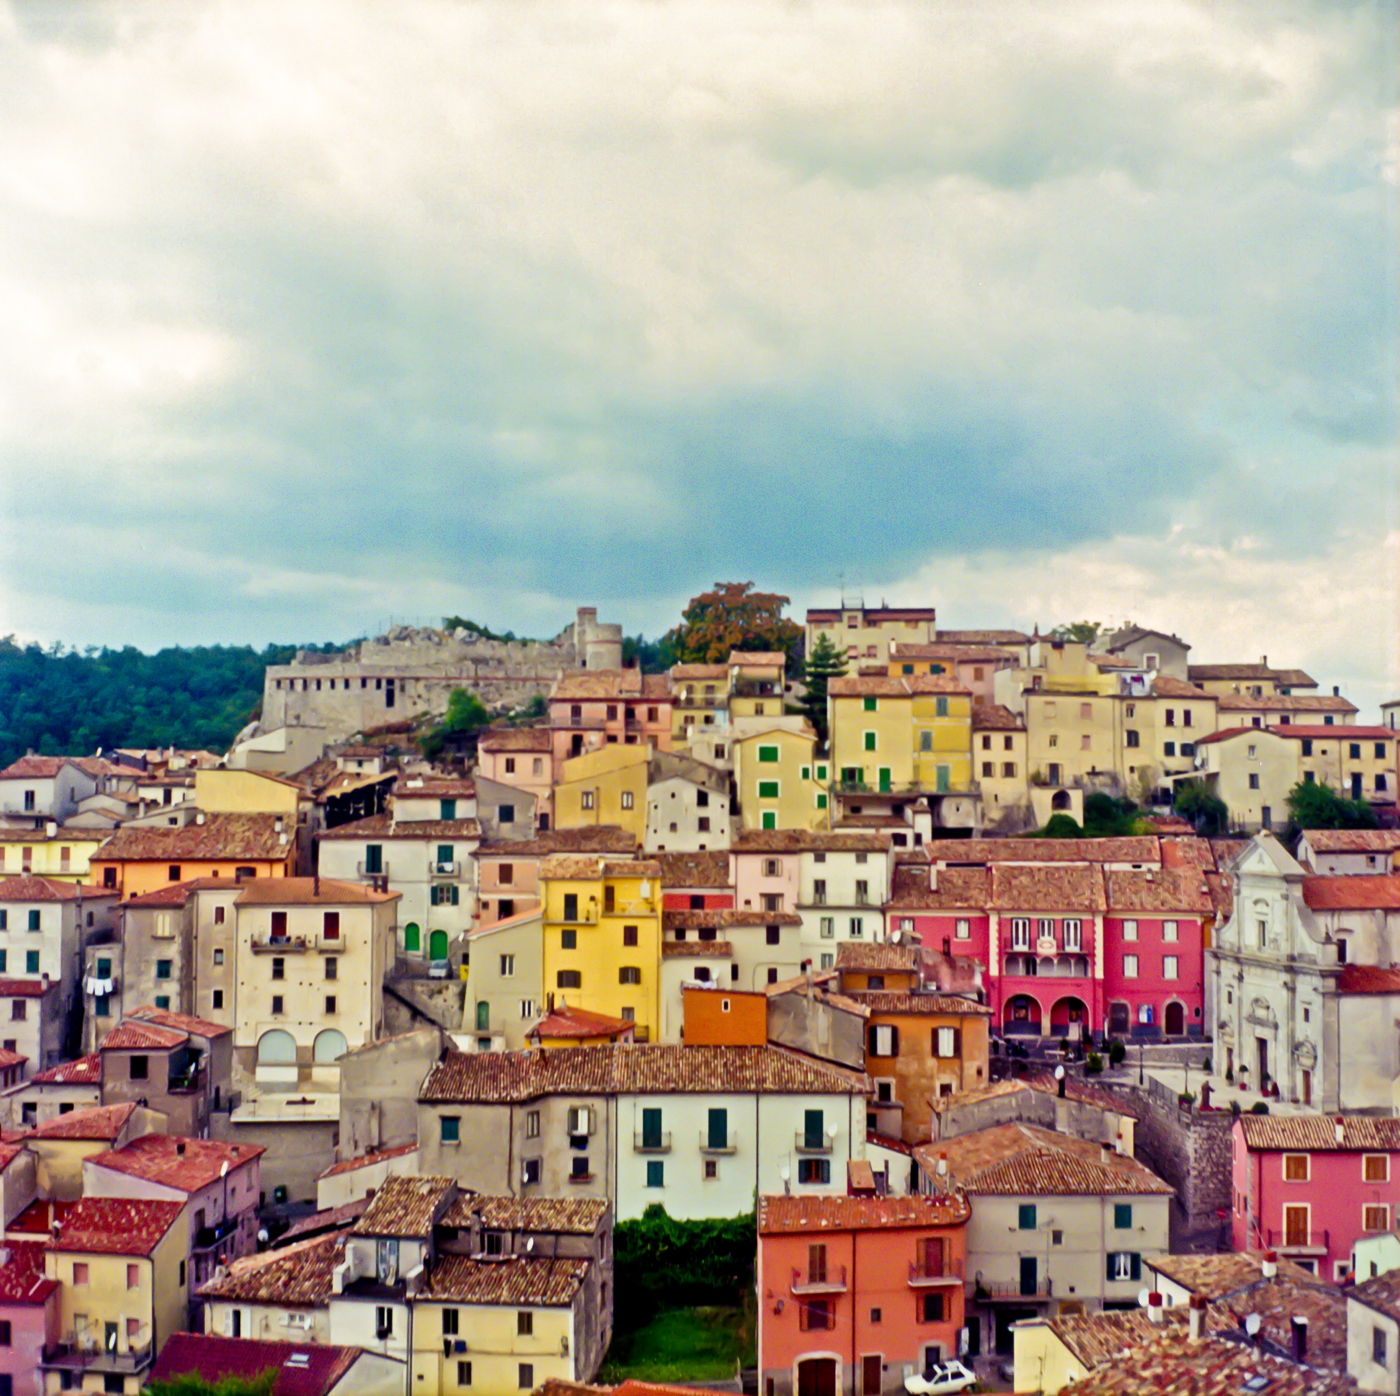 Emma_Sywyj_View_of _a Small . Village_Italy.jpg